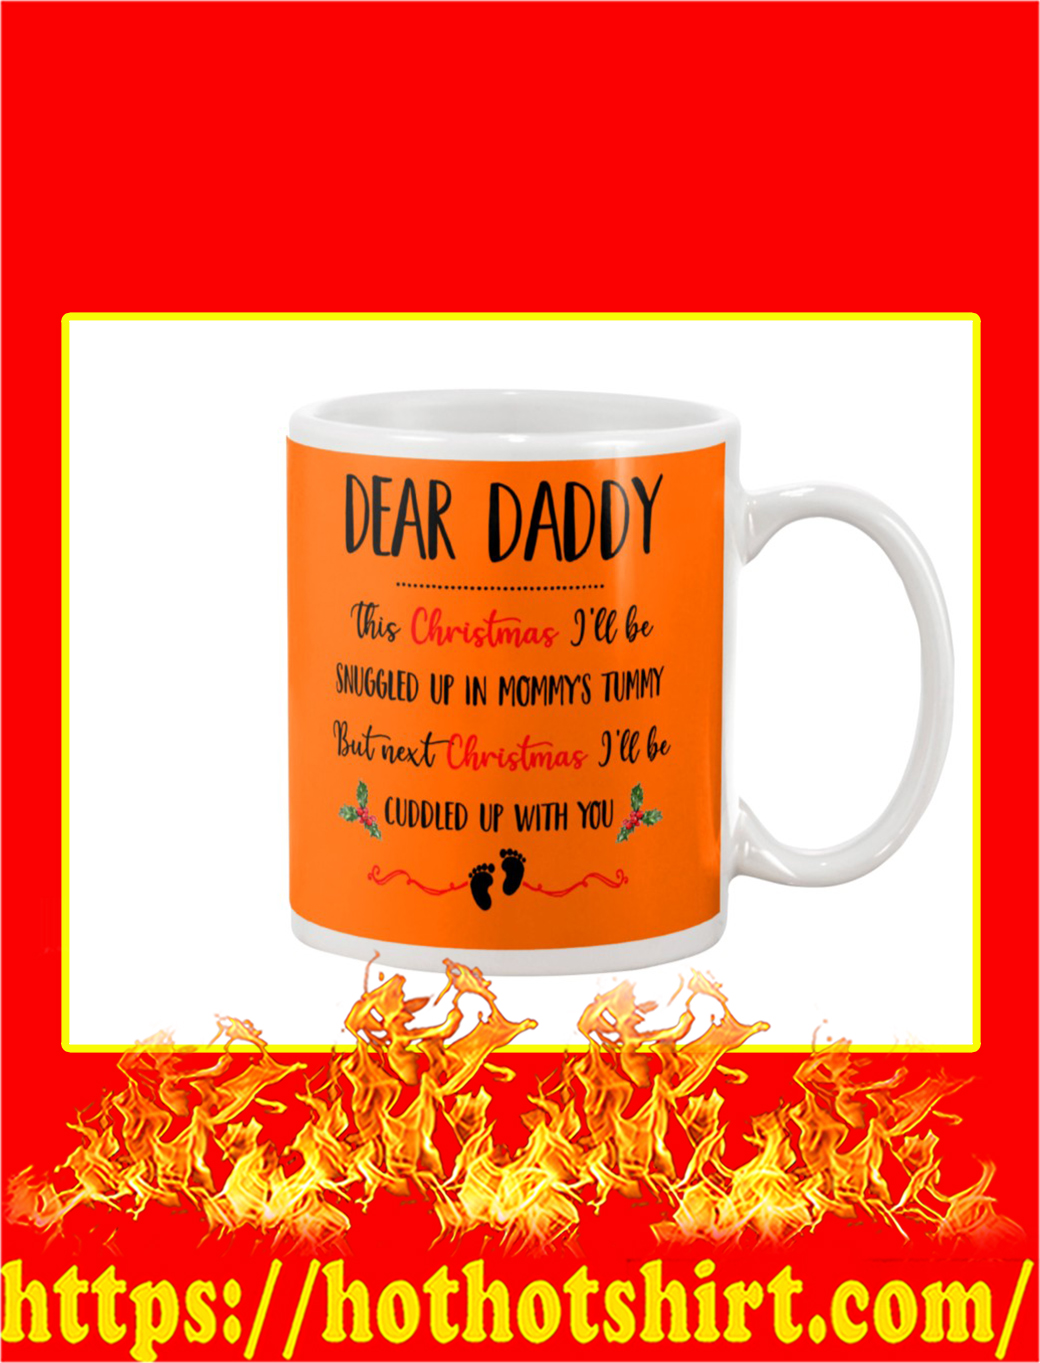 Dear Daddy This Christmas I'll Be Snuggled Up In Mommy's Tummy Mug- orange